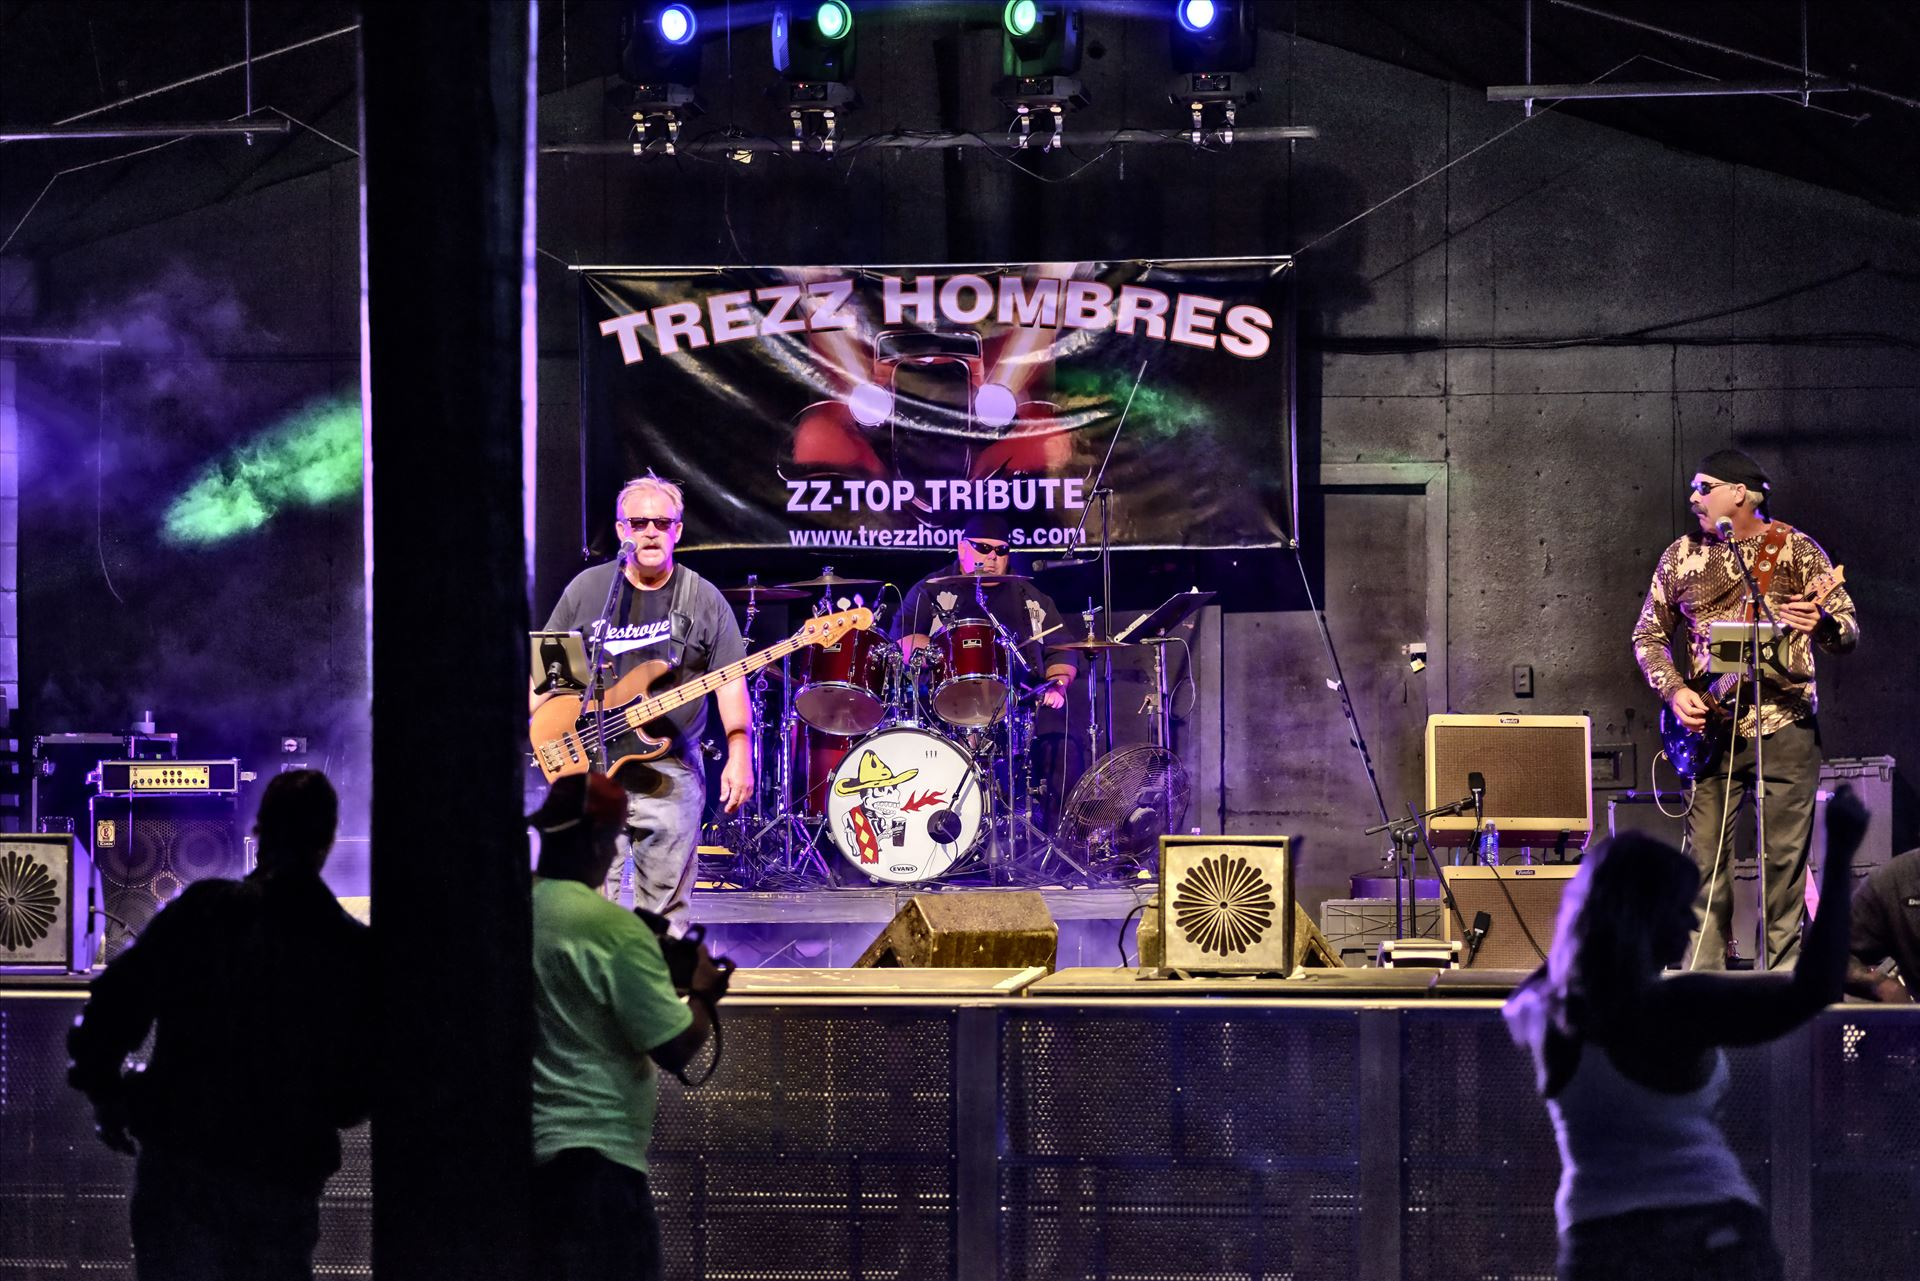 Trezz Hombres at Club La Vela - TREZZ HOMBRES ZZ Top Tribute Band plays at Club La Vela during the Harley Davidson bikini contest